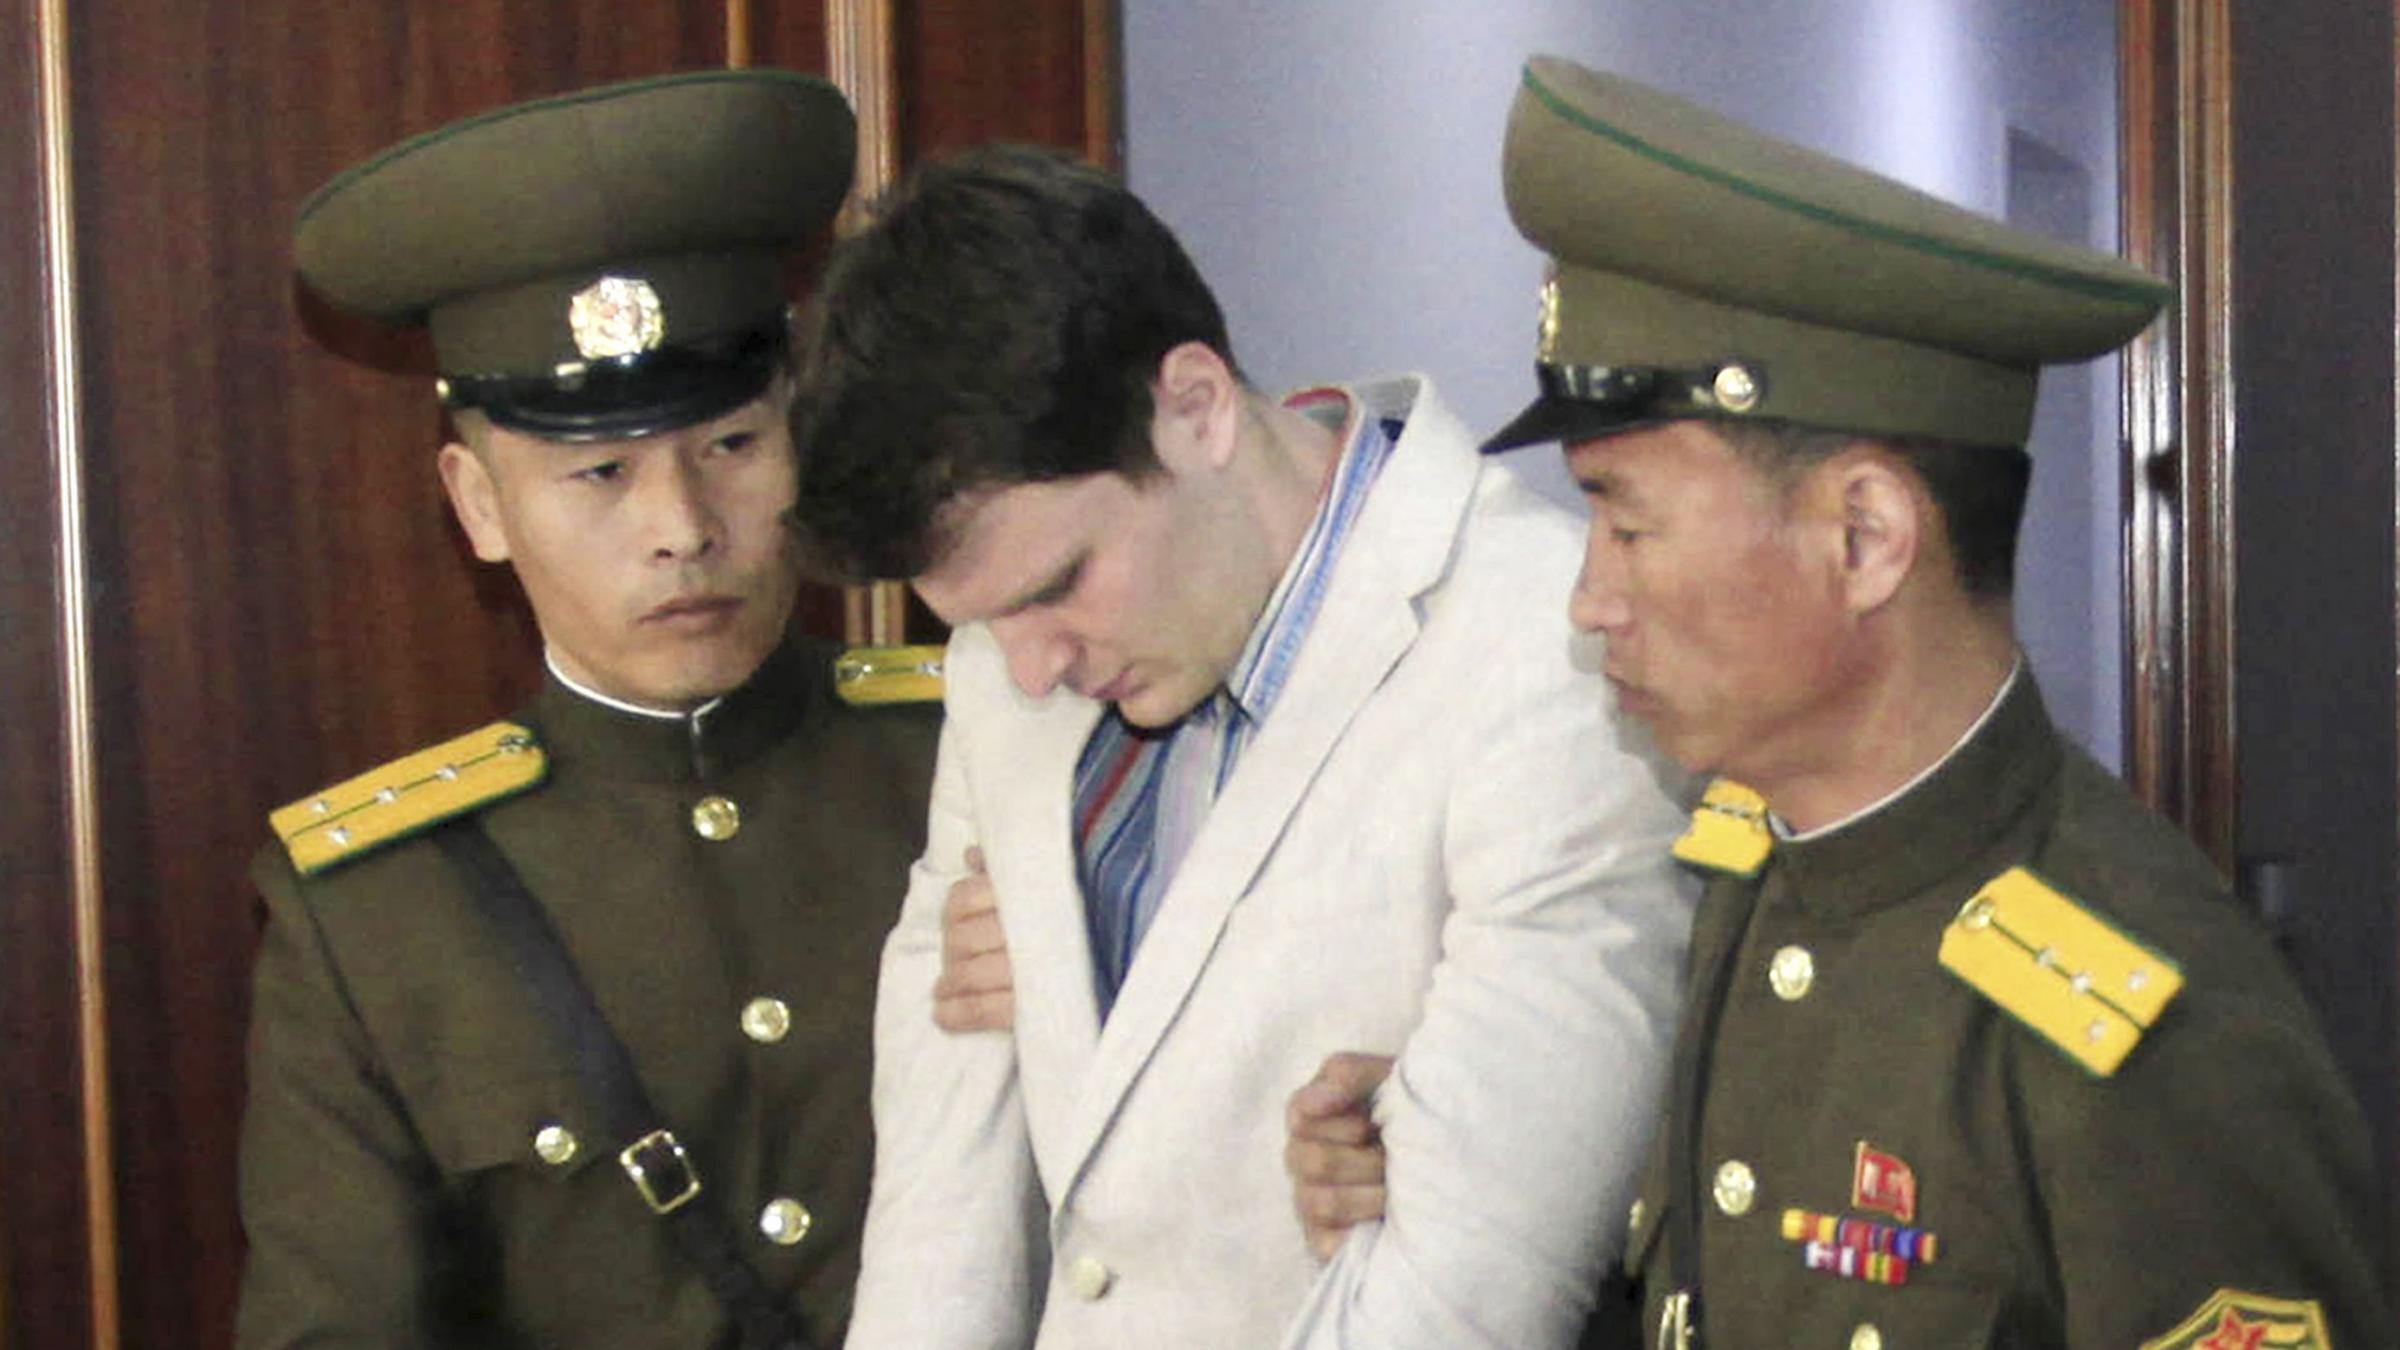 U.S. student released from N. Korea has severe brain damage: doctor